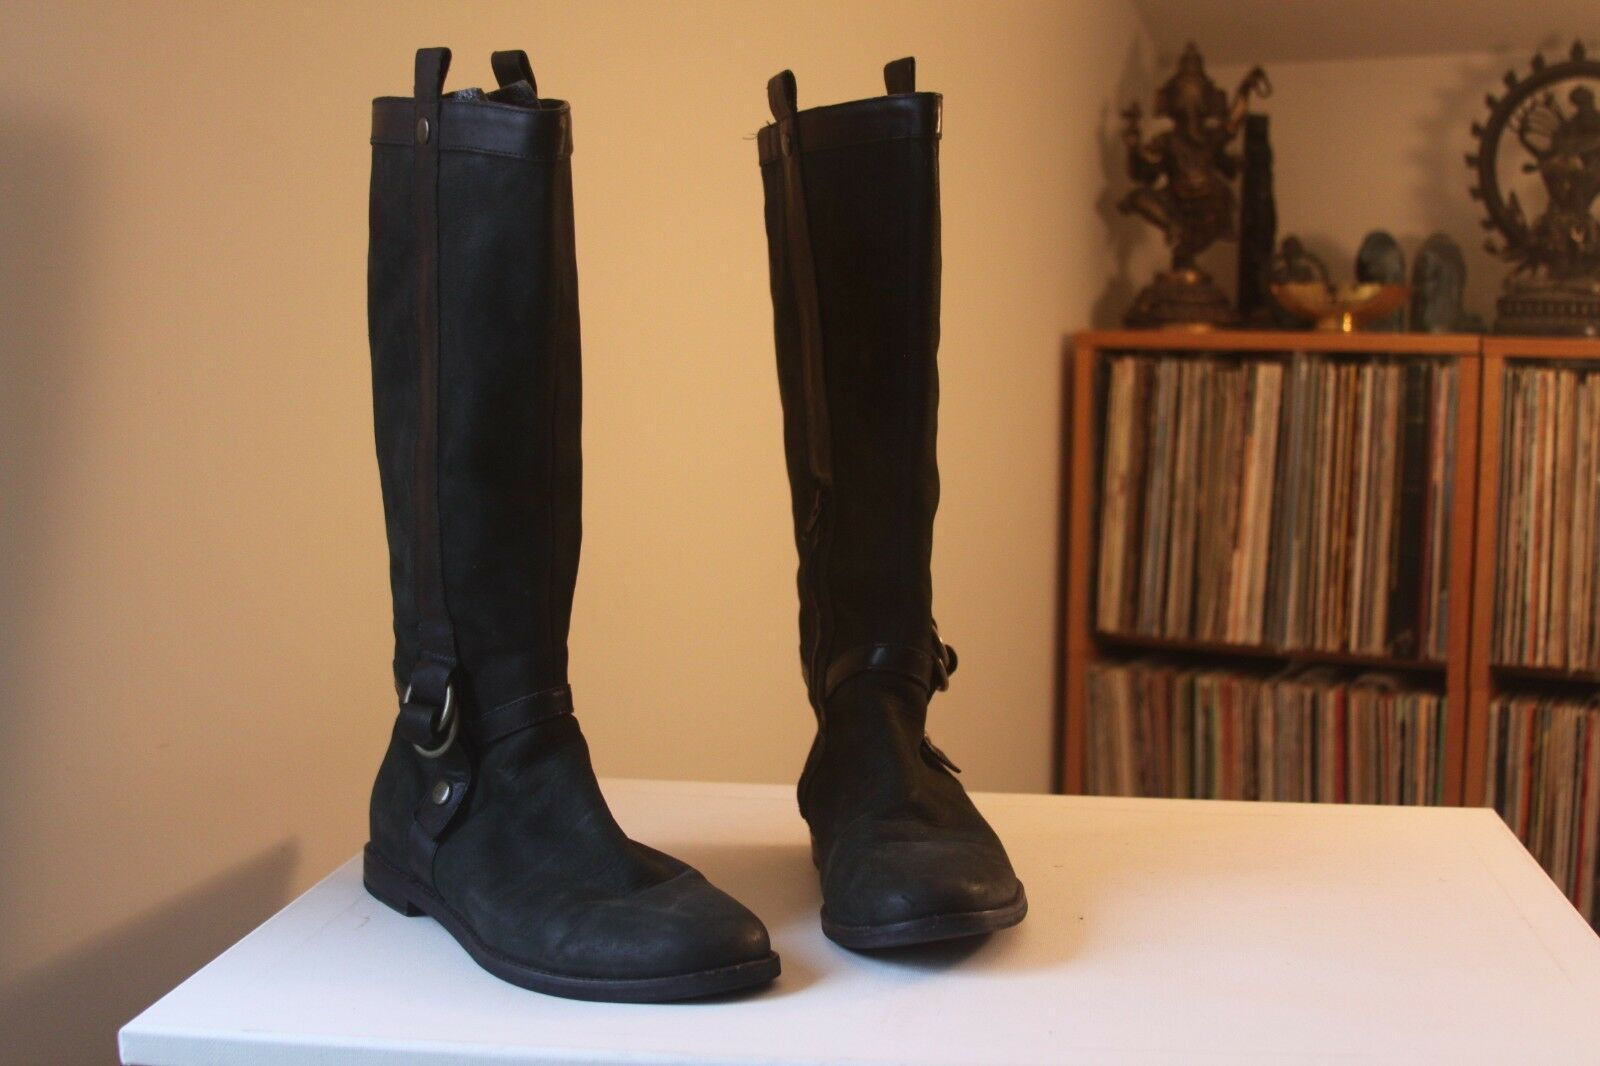 Cole Haan D32274 Air Liberty 15.5   Tall Black Leather Riding Boots Size 7.5 B